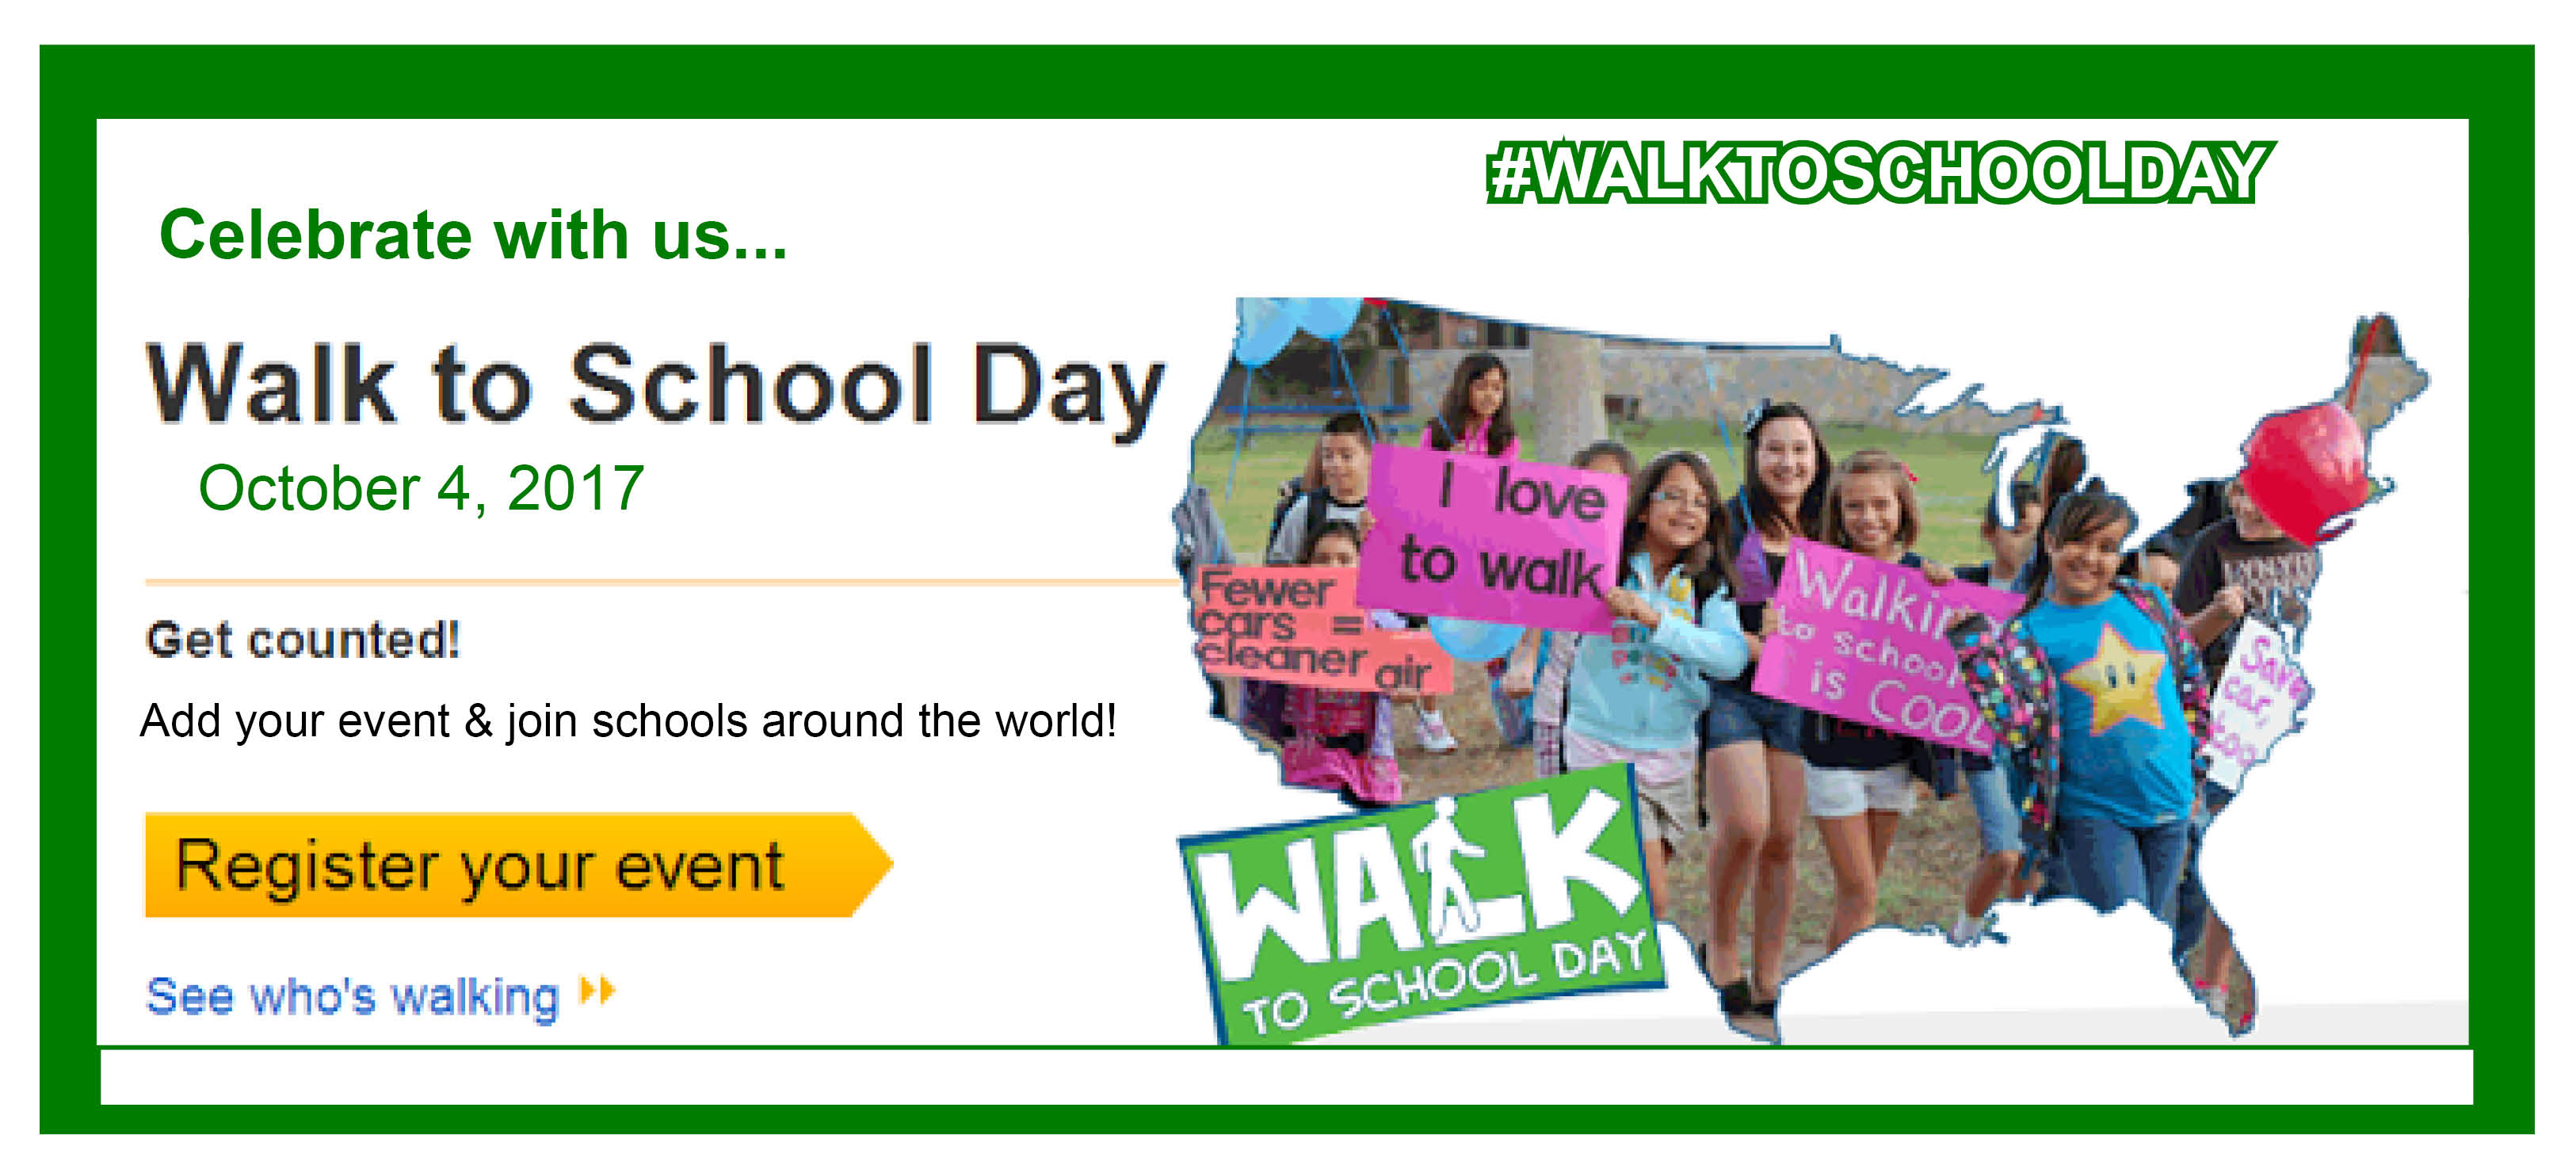 Image for HCPS laces up to celebrate Walk to School Day on October 4th